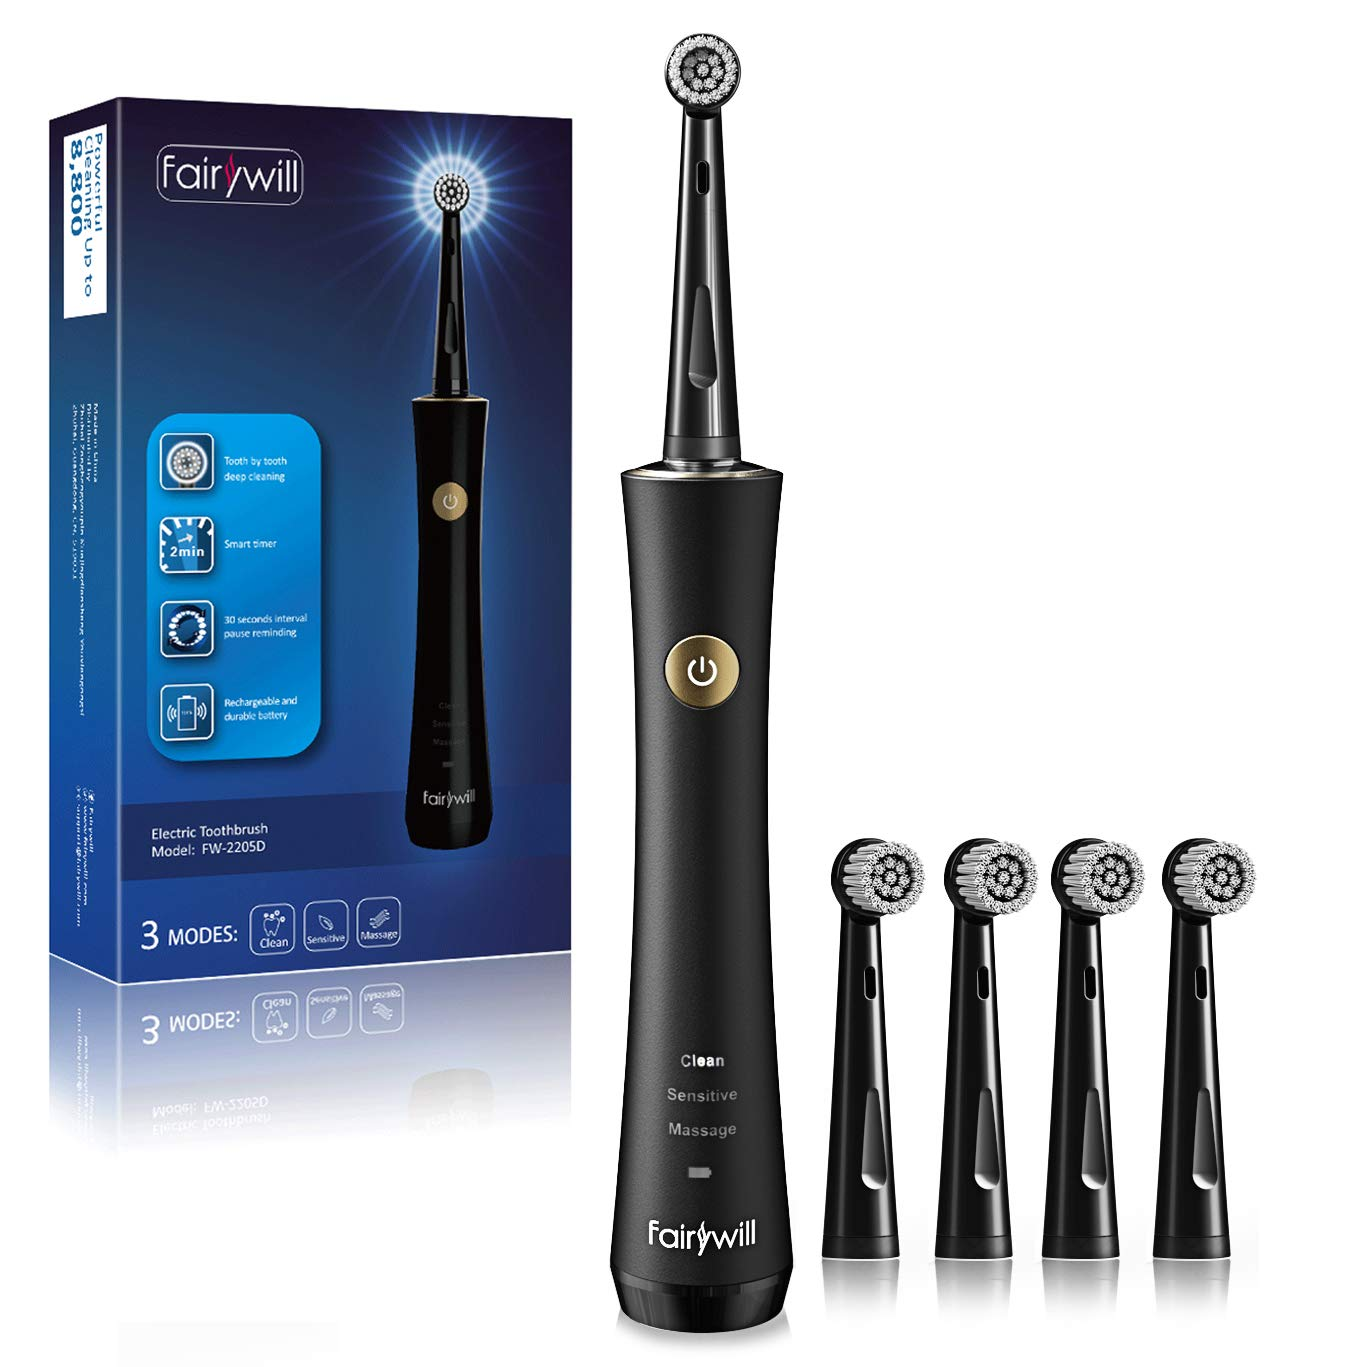 Fairywill Rotary Rotating Electric Toothbrush - For A Powerful Dentist Like Clean with 3 Modes, Waterproof with A Built In Timer, Rechargeable with A Low Battery Reminder, and 2 Brush Heads In Black